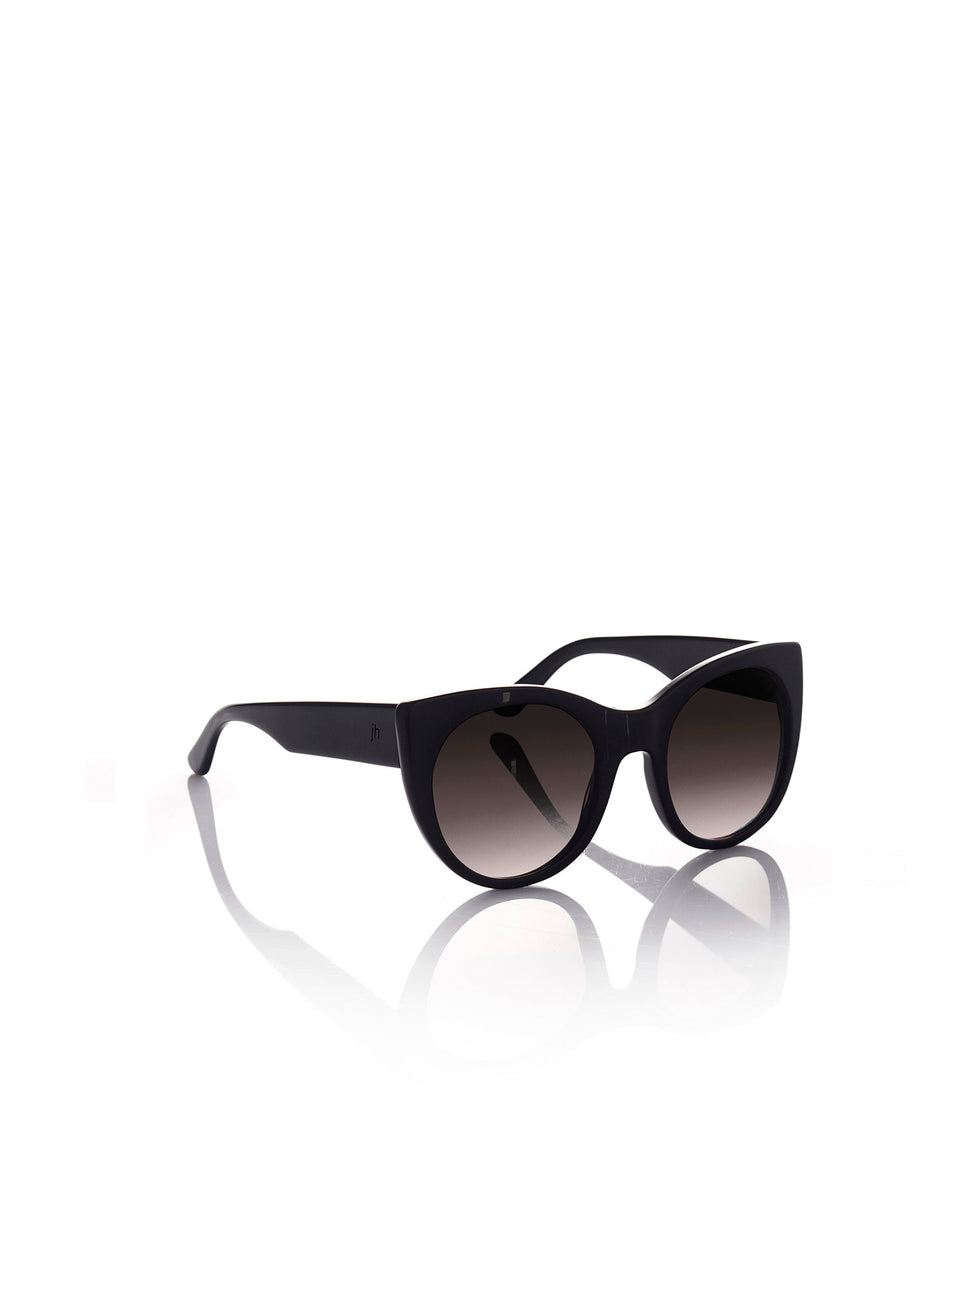 JH Eyewear No. 04 (acetate) black